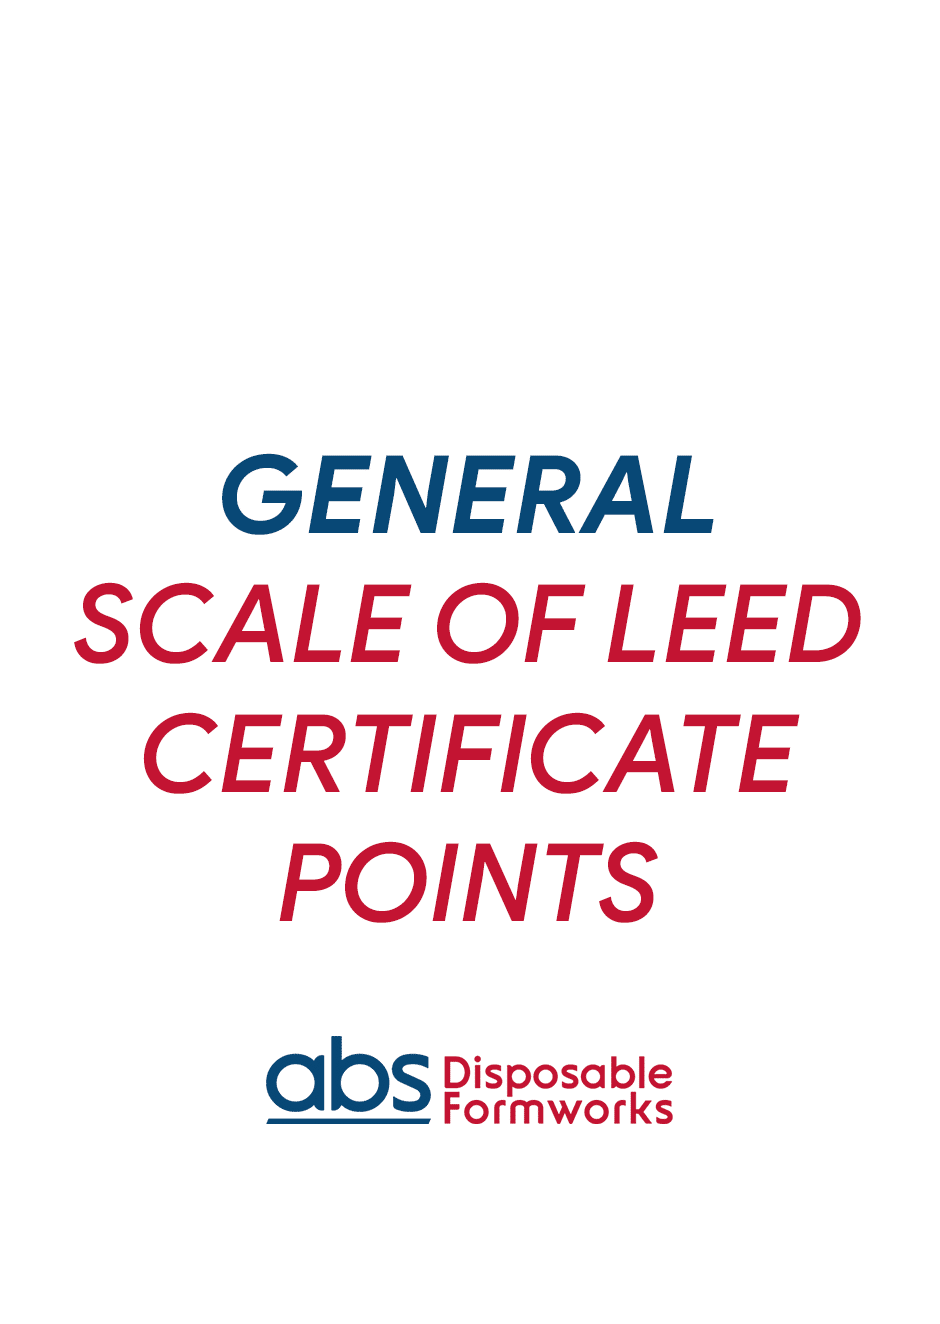 GENERAL SCALE OF LEED CERTIFICATE POINTS